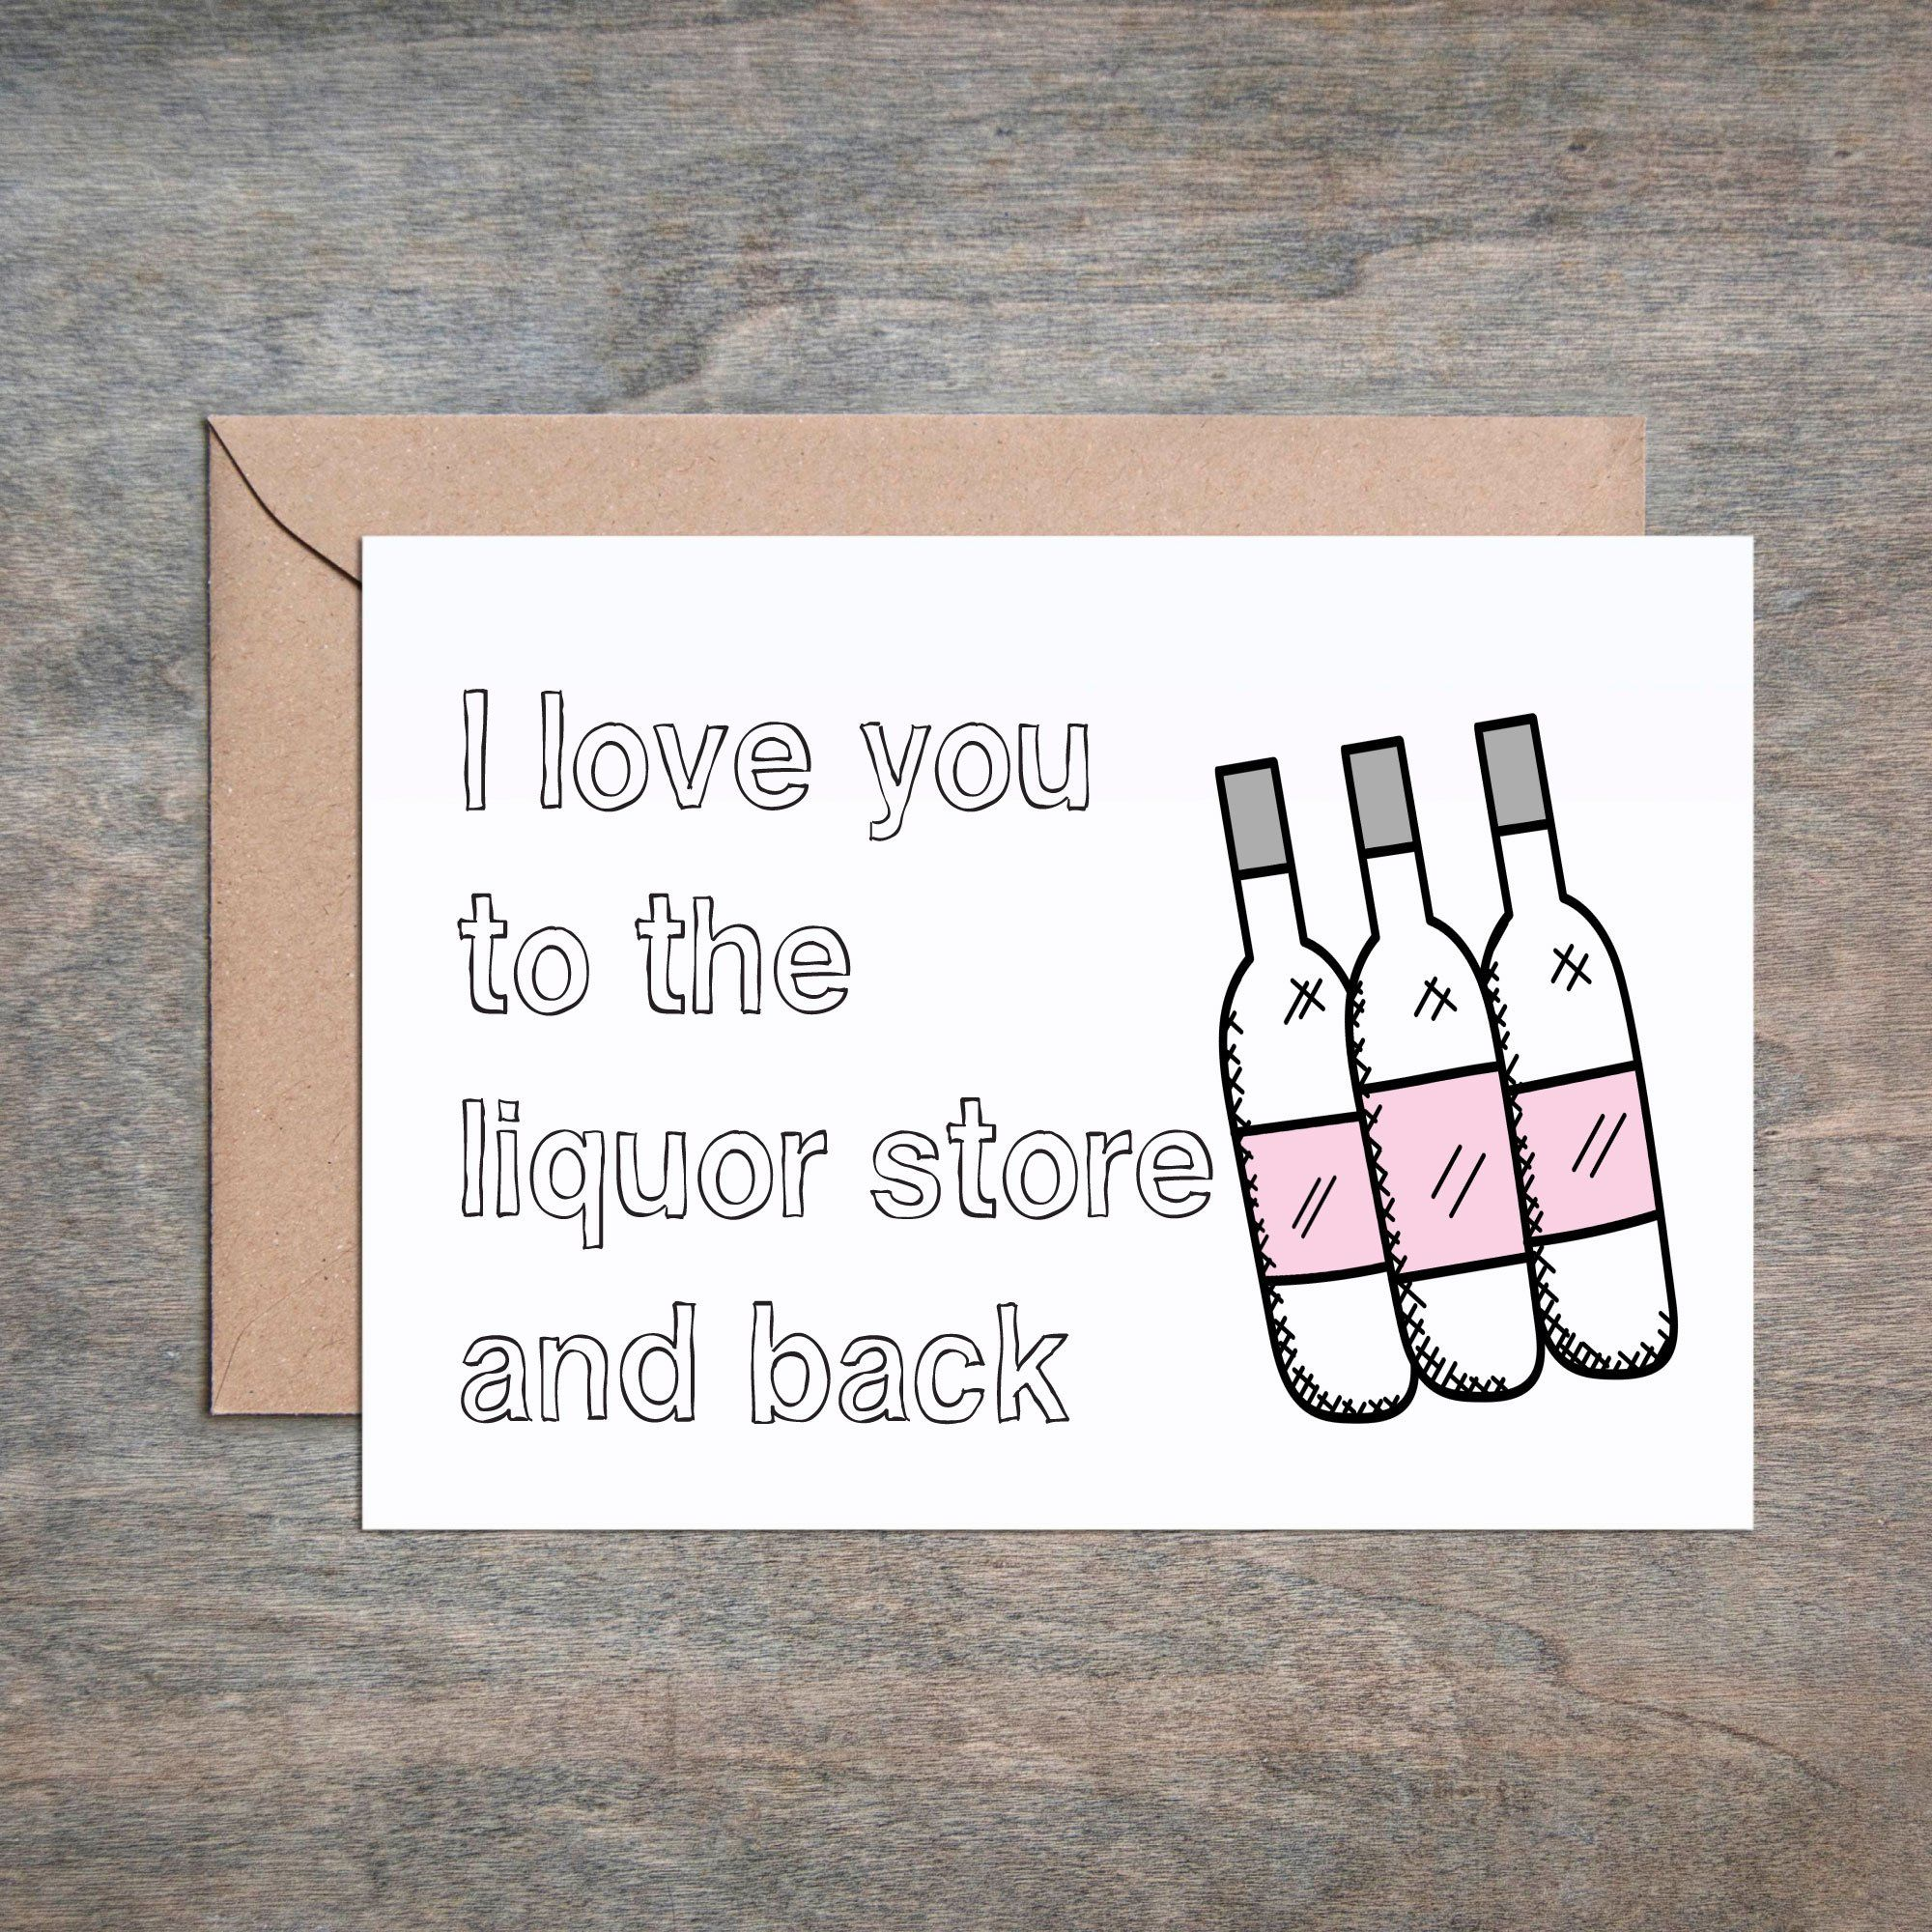 I Love You To The Liquor Store And Back Card Funny Vd Ideas